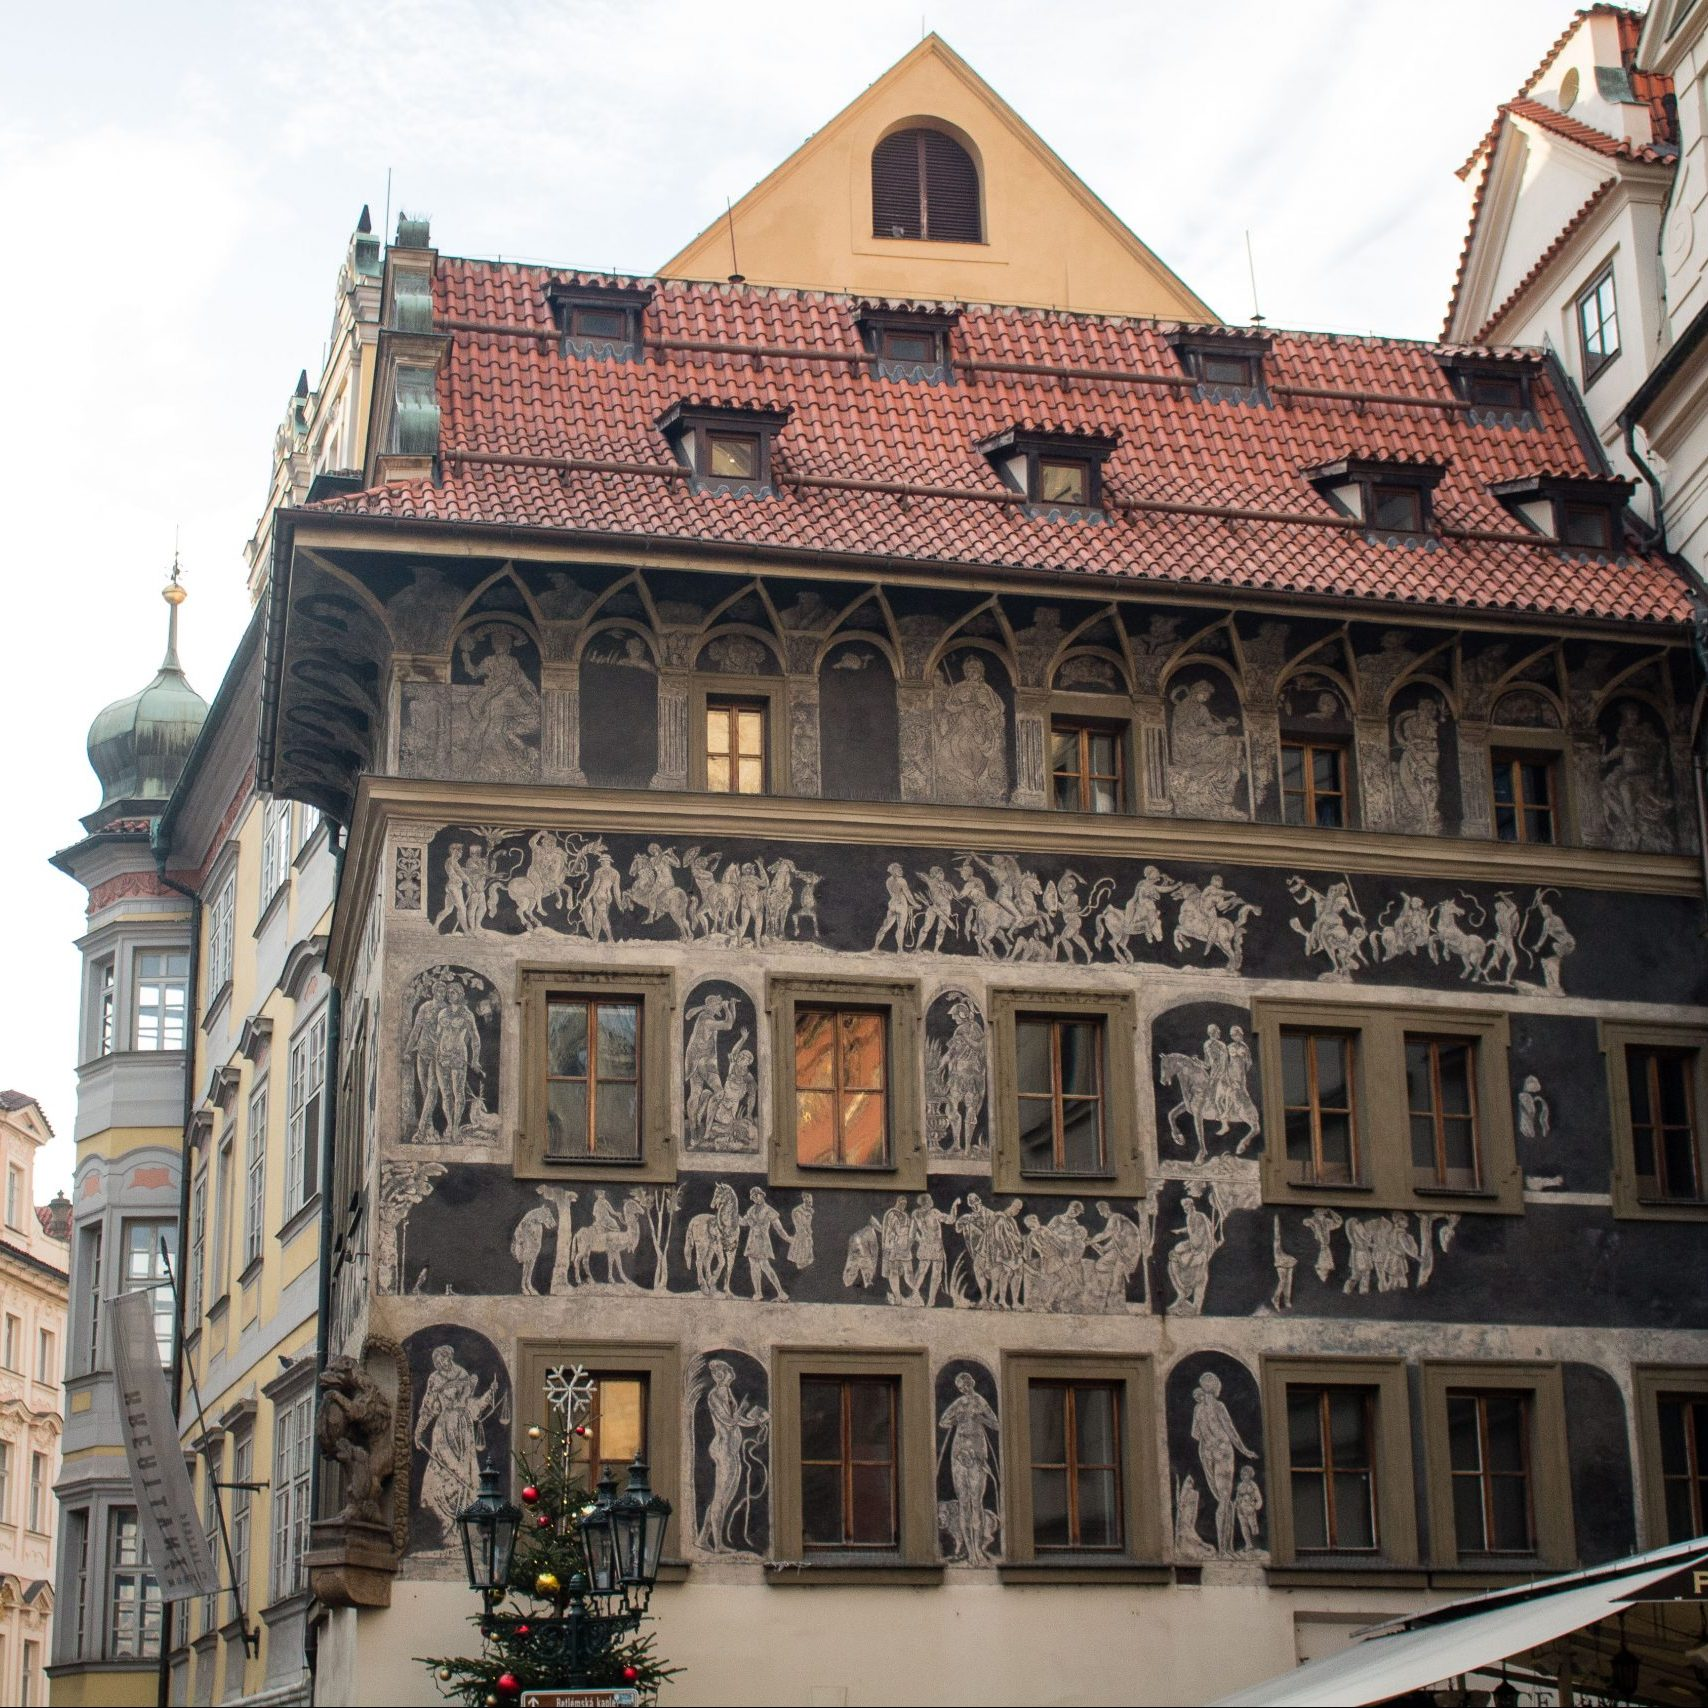 Prague is one of my favorite cities! Here's what to see when you go.